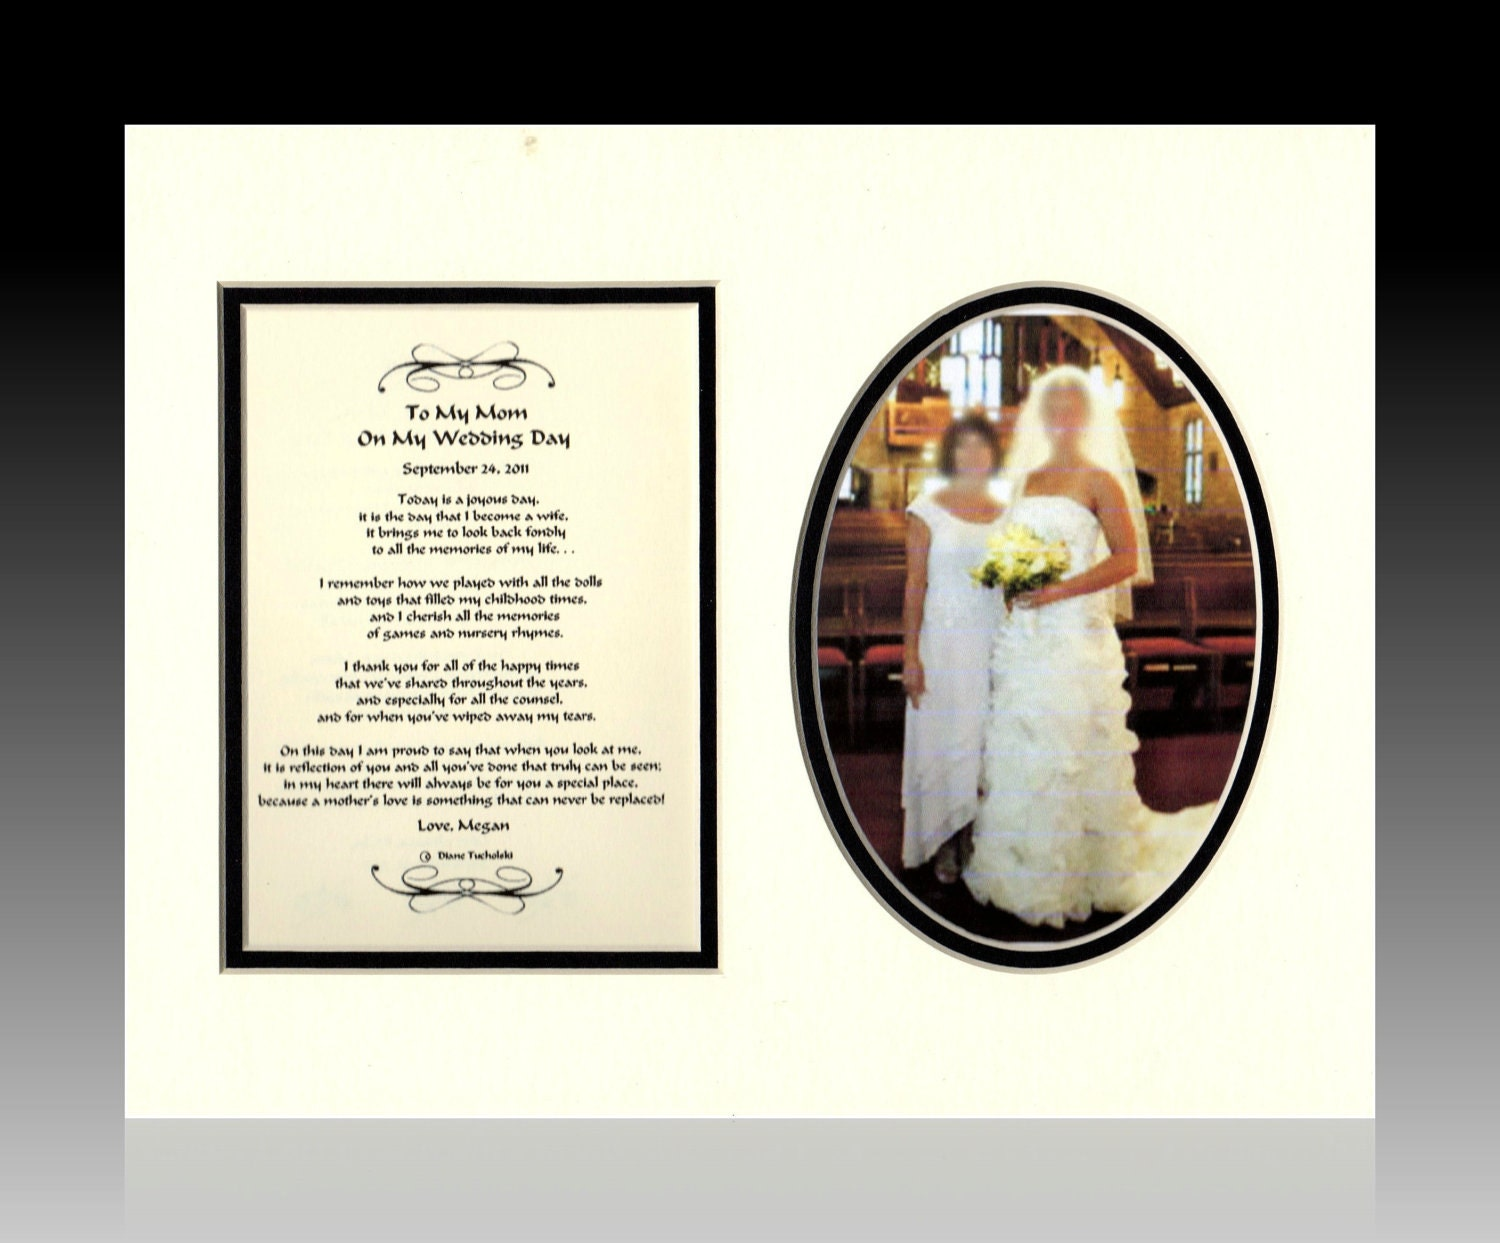 Wedding Gift For Bride From Mom : Wedding Mother of The Bride Gift Personalized To My Mom on My